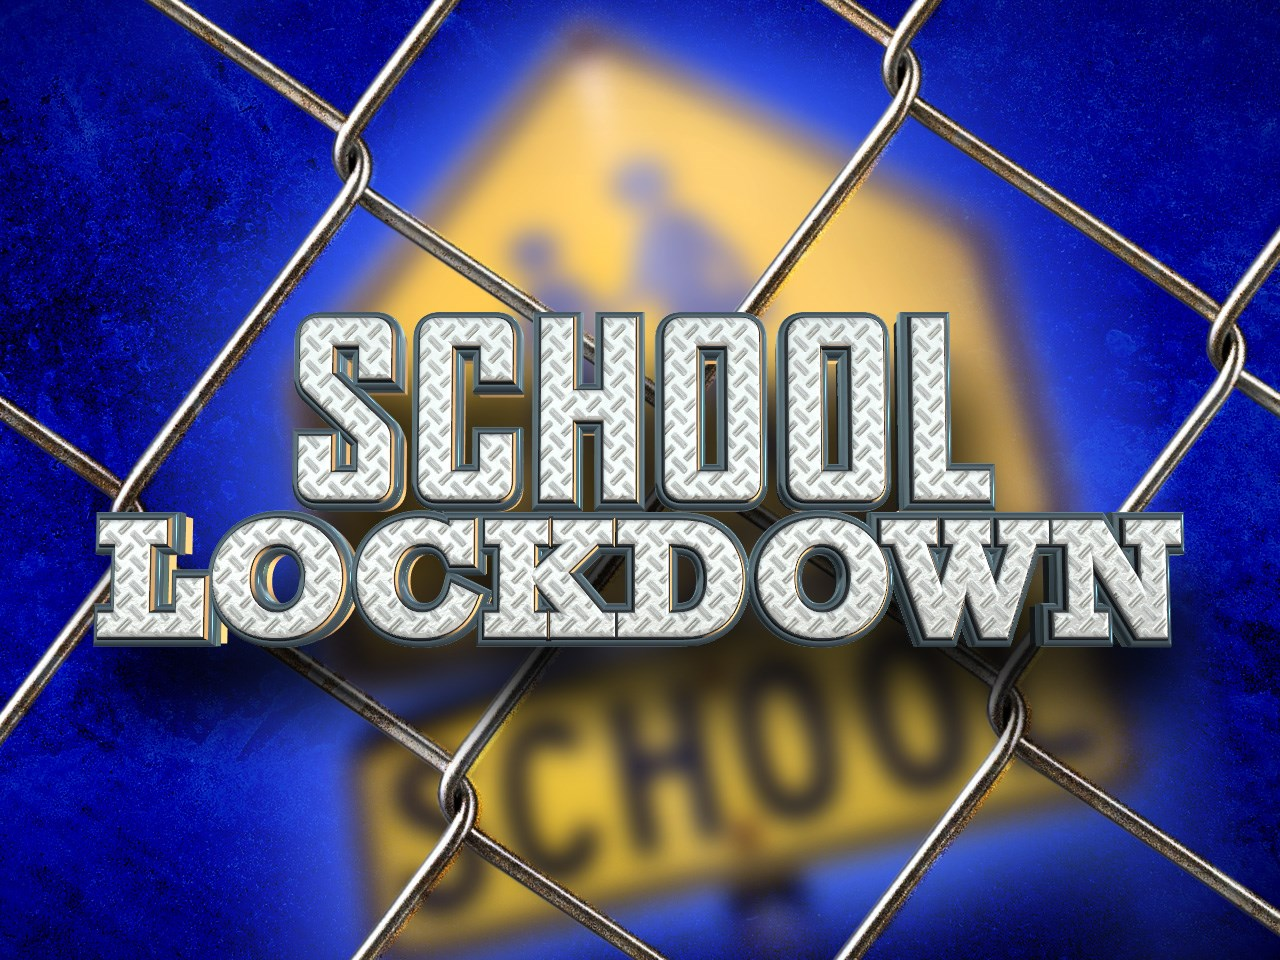 Turning Point School in Reno on code red lockdown